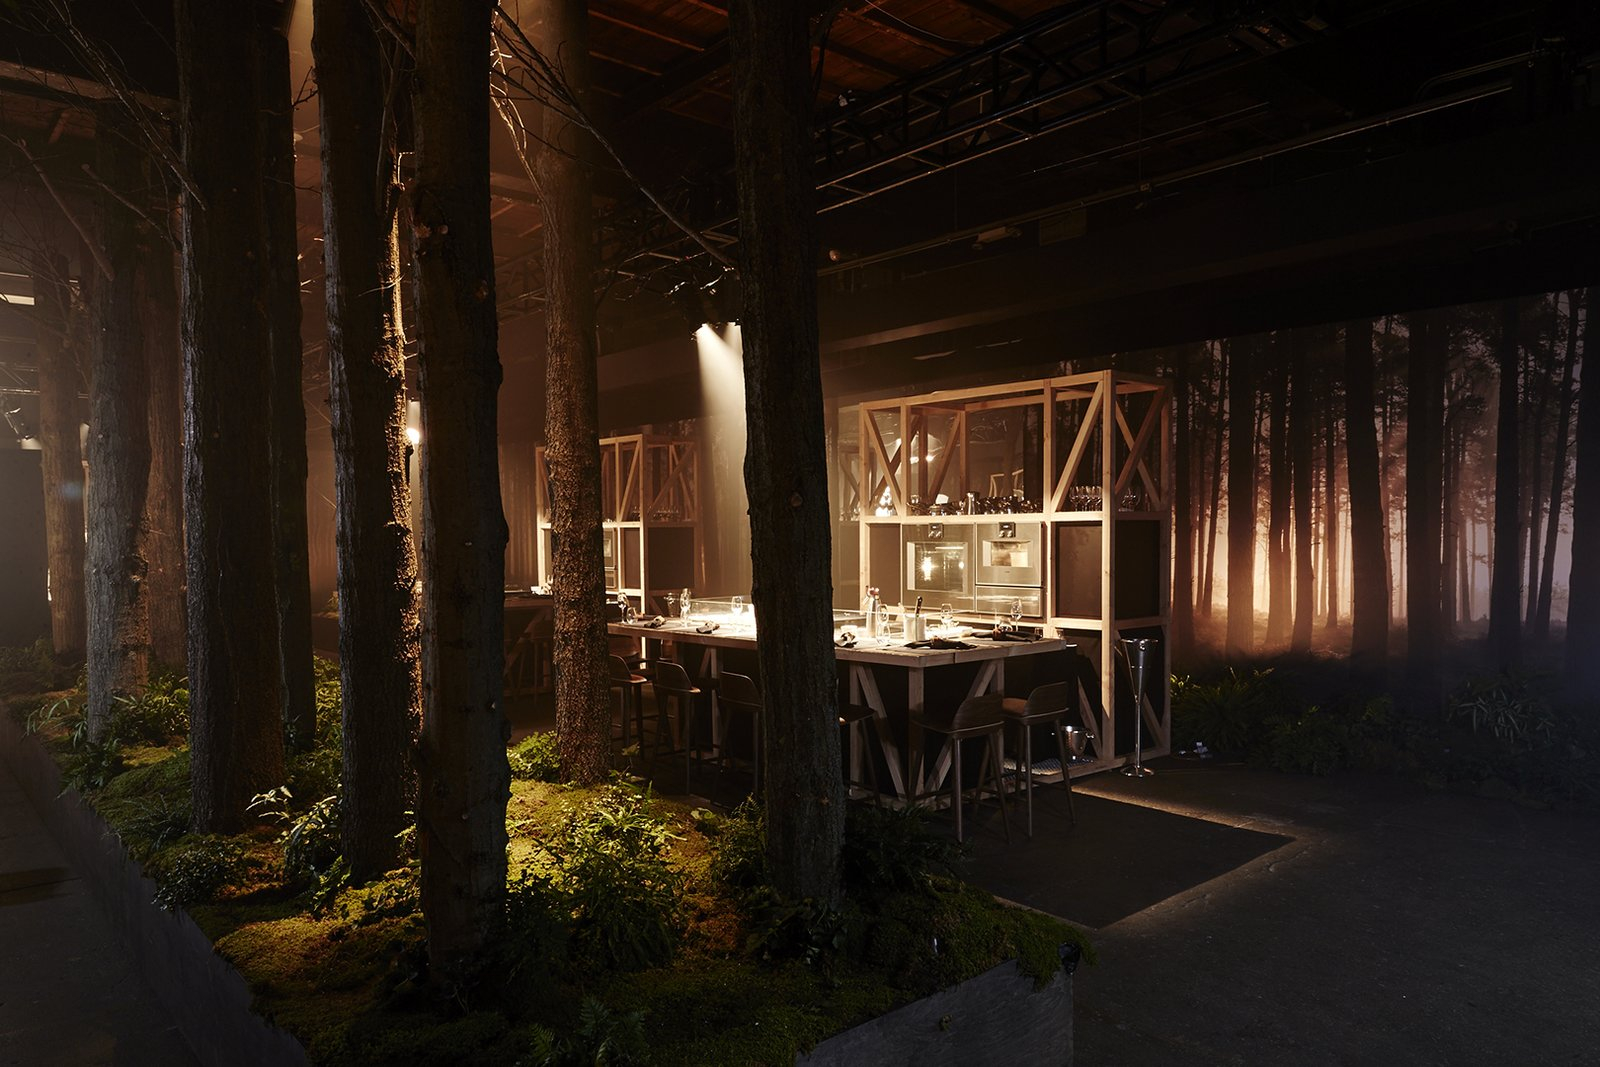 To celebrate their 333rd anniversary, appliance brand Gaggenau created Restaurant 1683, a four-night pop-up that brought the Black Forest to New York City.  gaggenau.com From the Editors' Inbox: October 2016 by Heather Corcoran